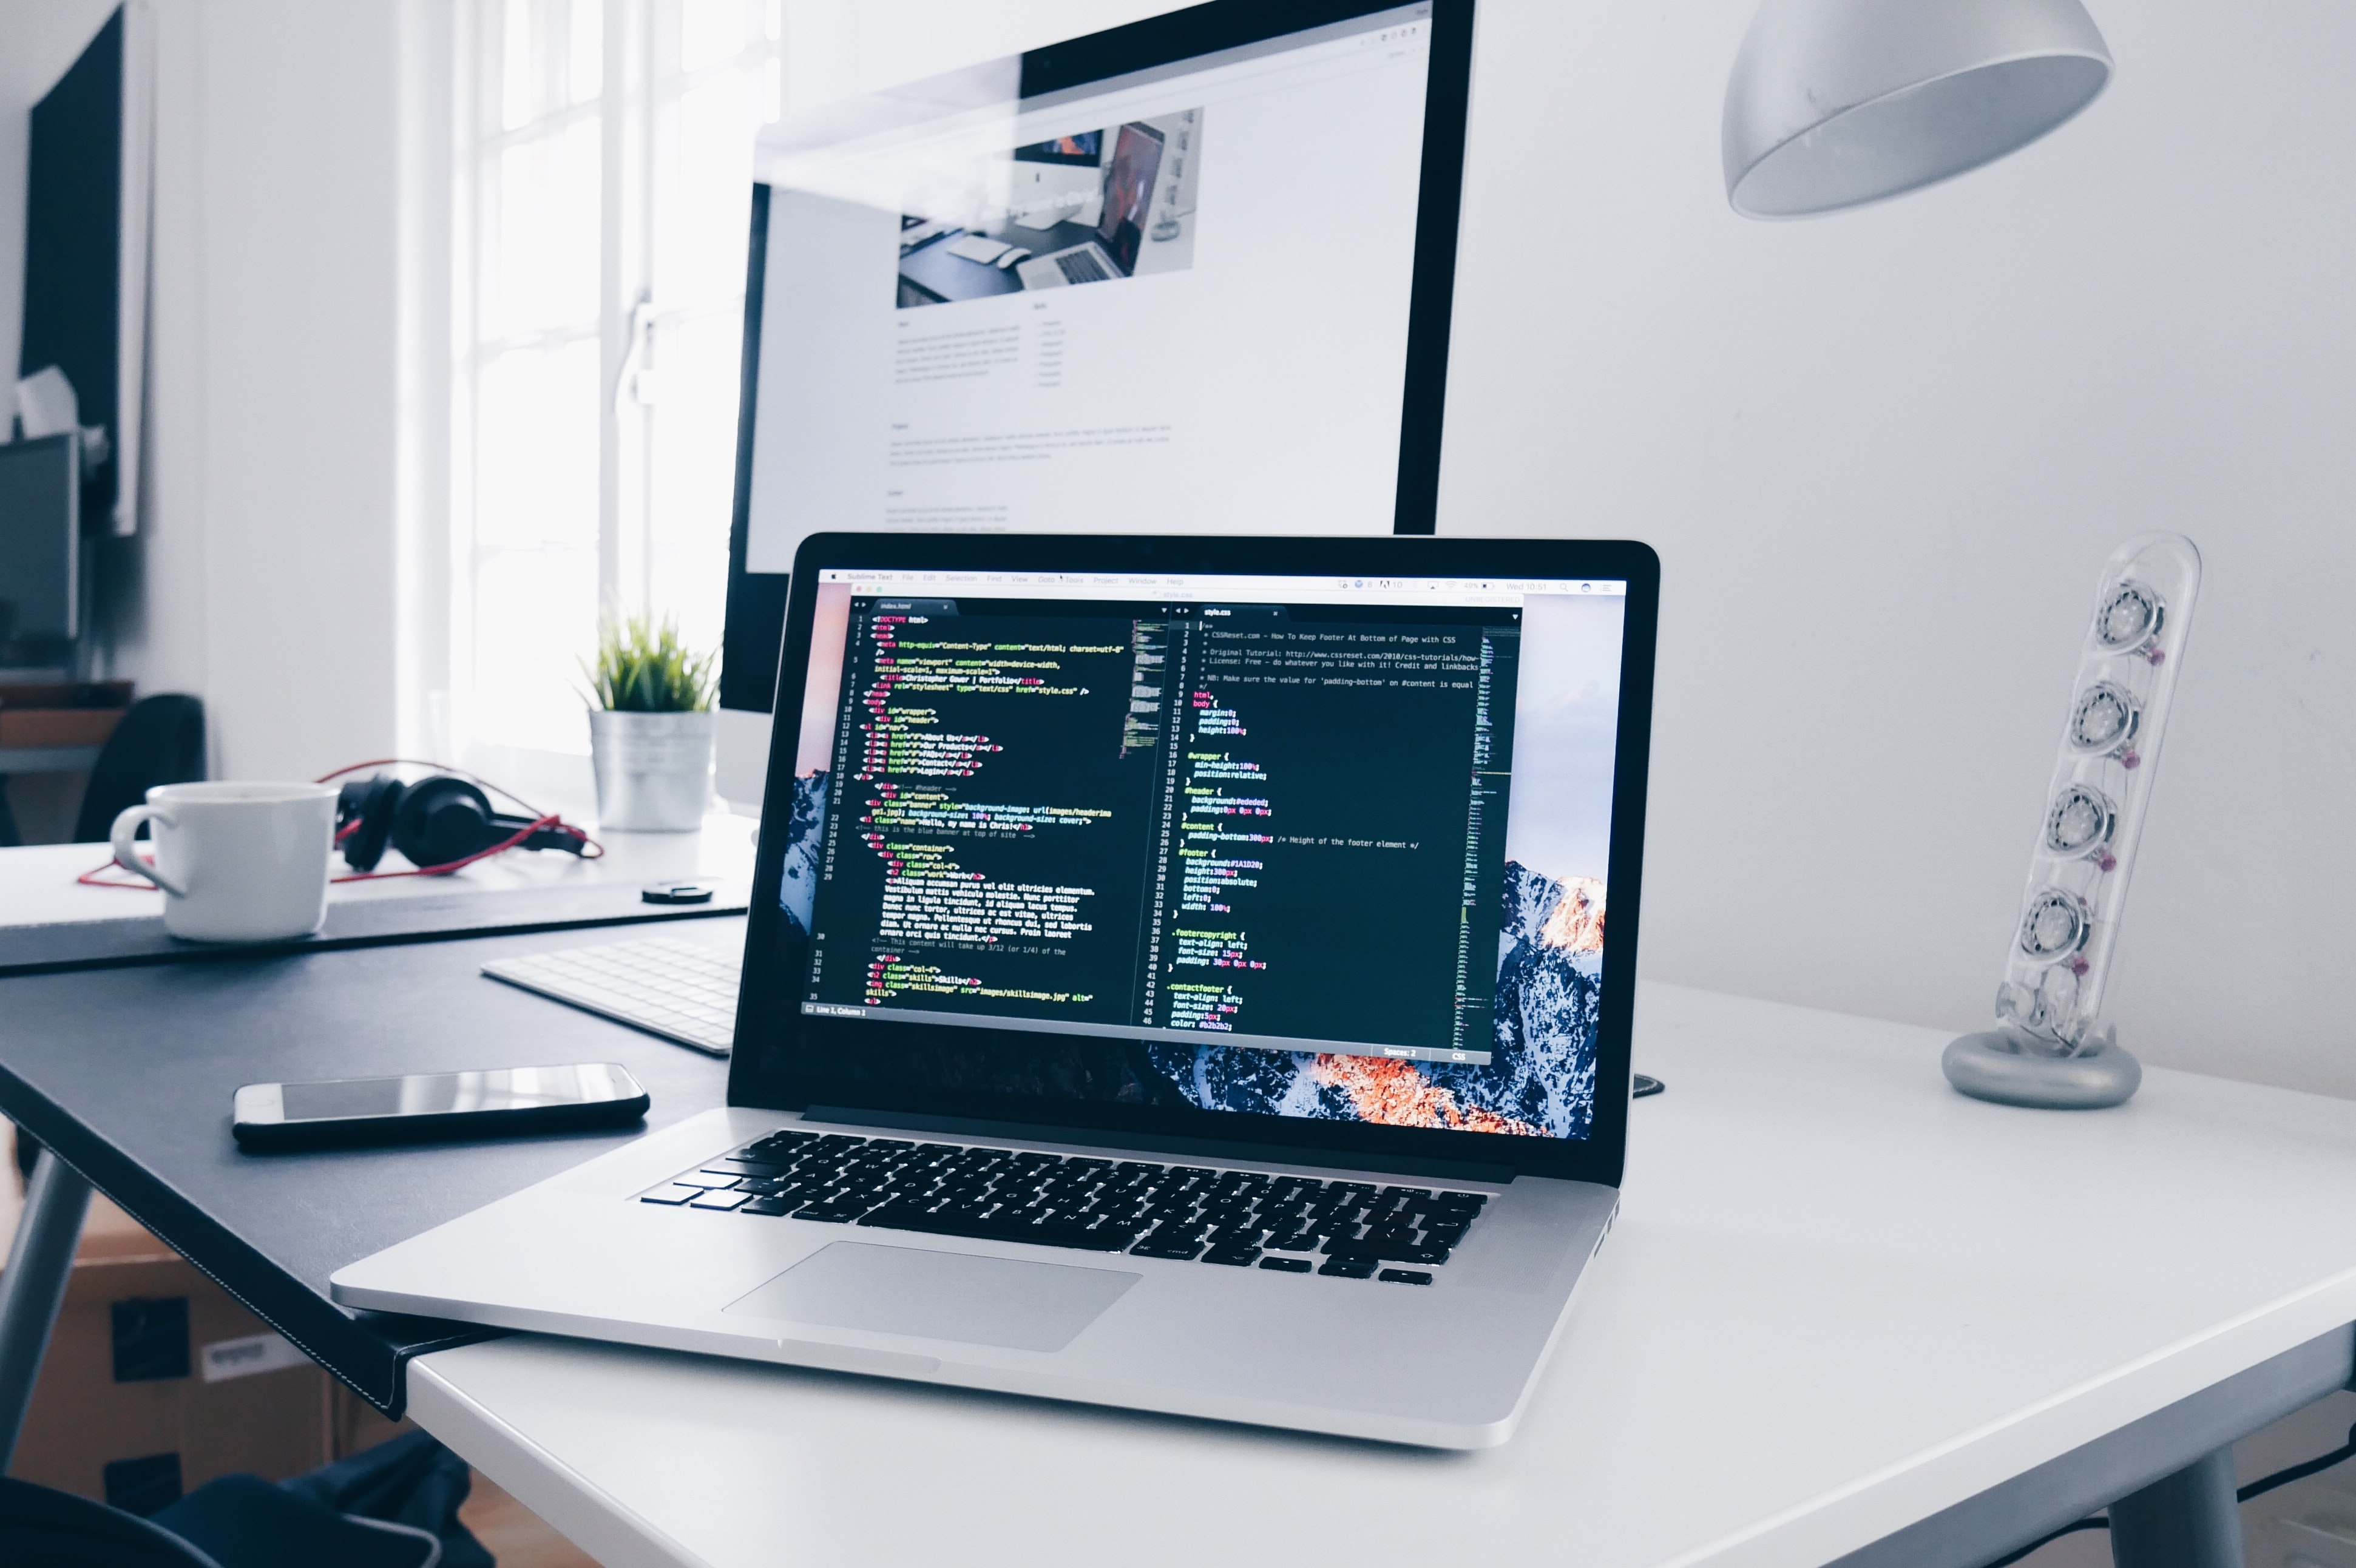 Web developer working on his Macbook using code editor to build a website.